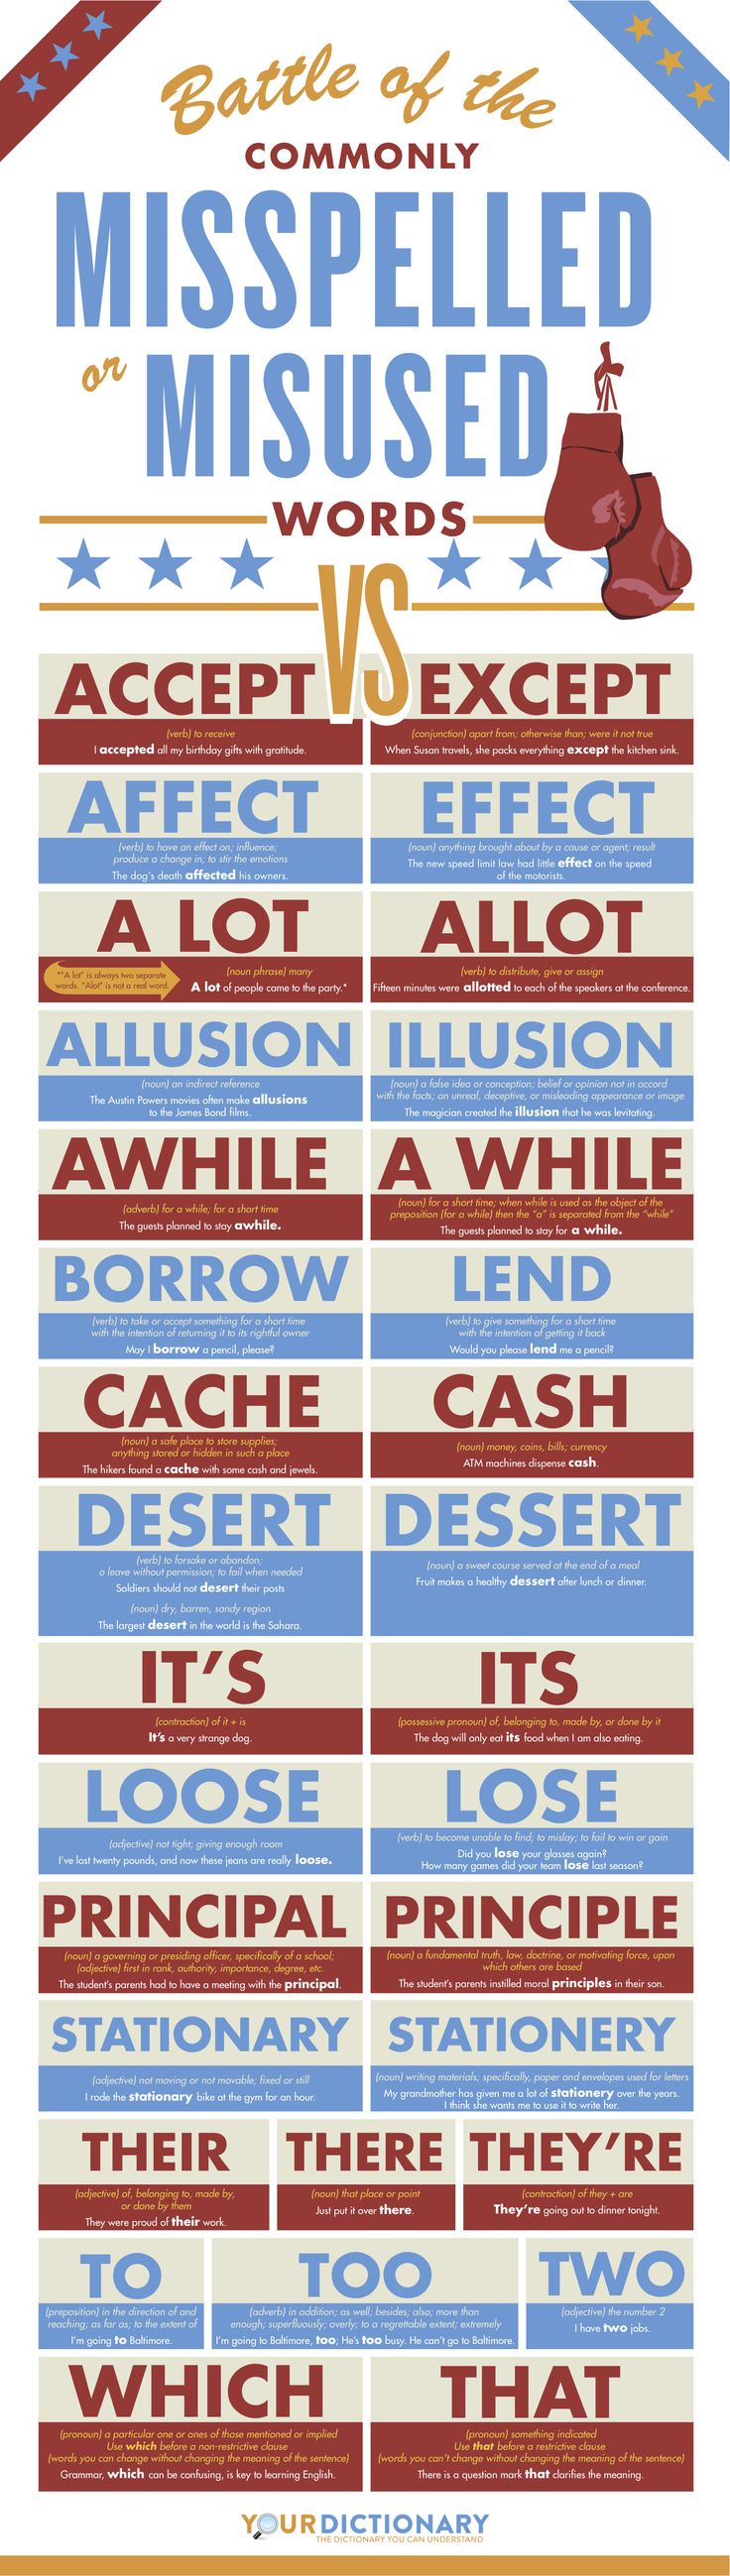 Battle of the Commonly Misspelled or Misused Words #infographic #Education #Language